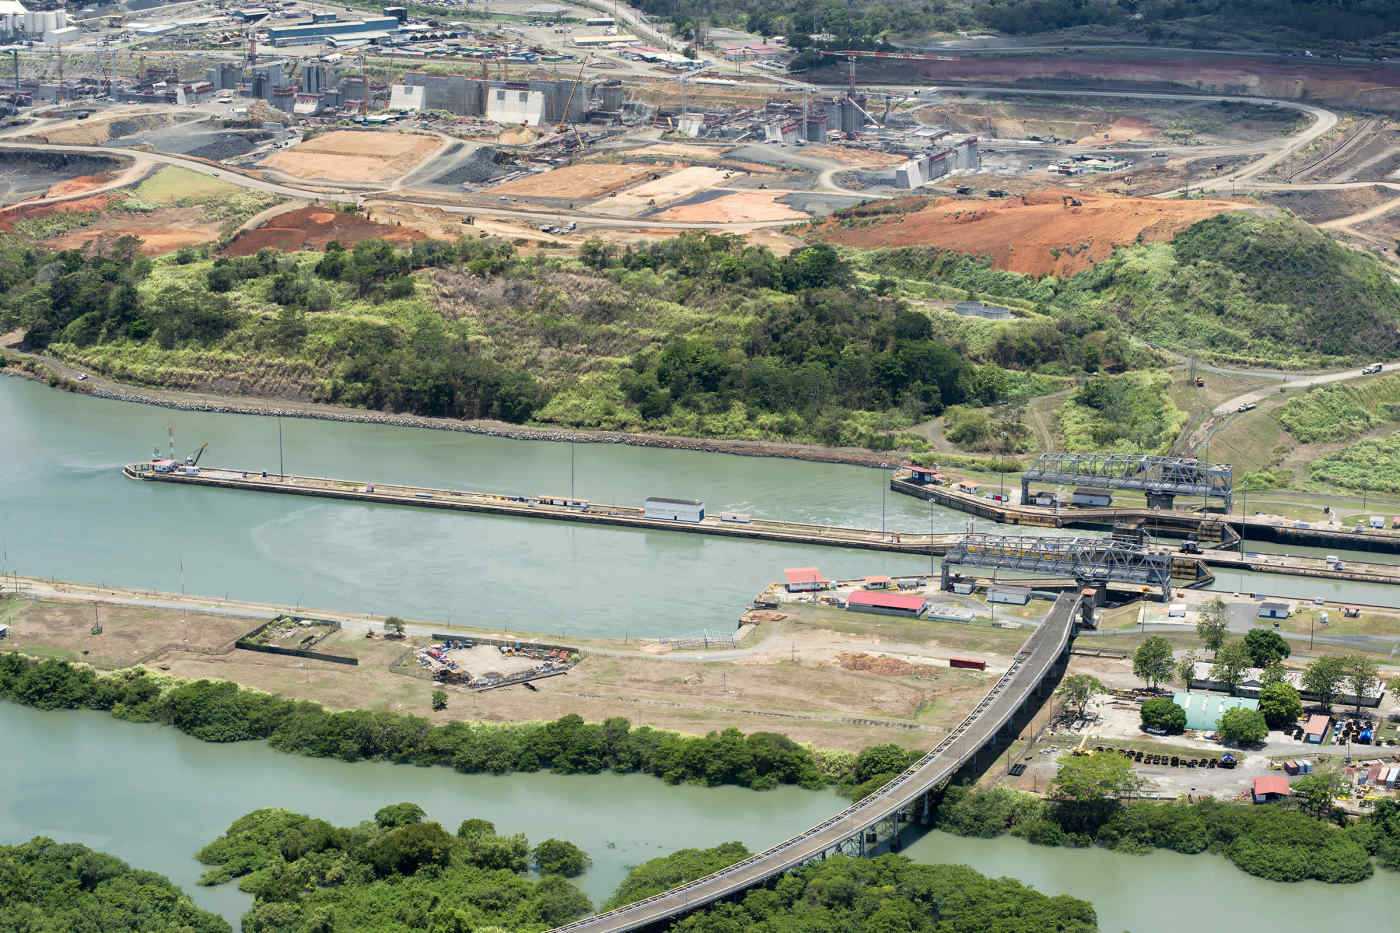 Miraflores Locks at Panama Canal in Panama City